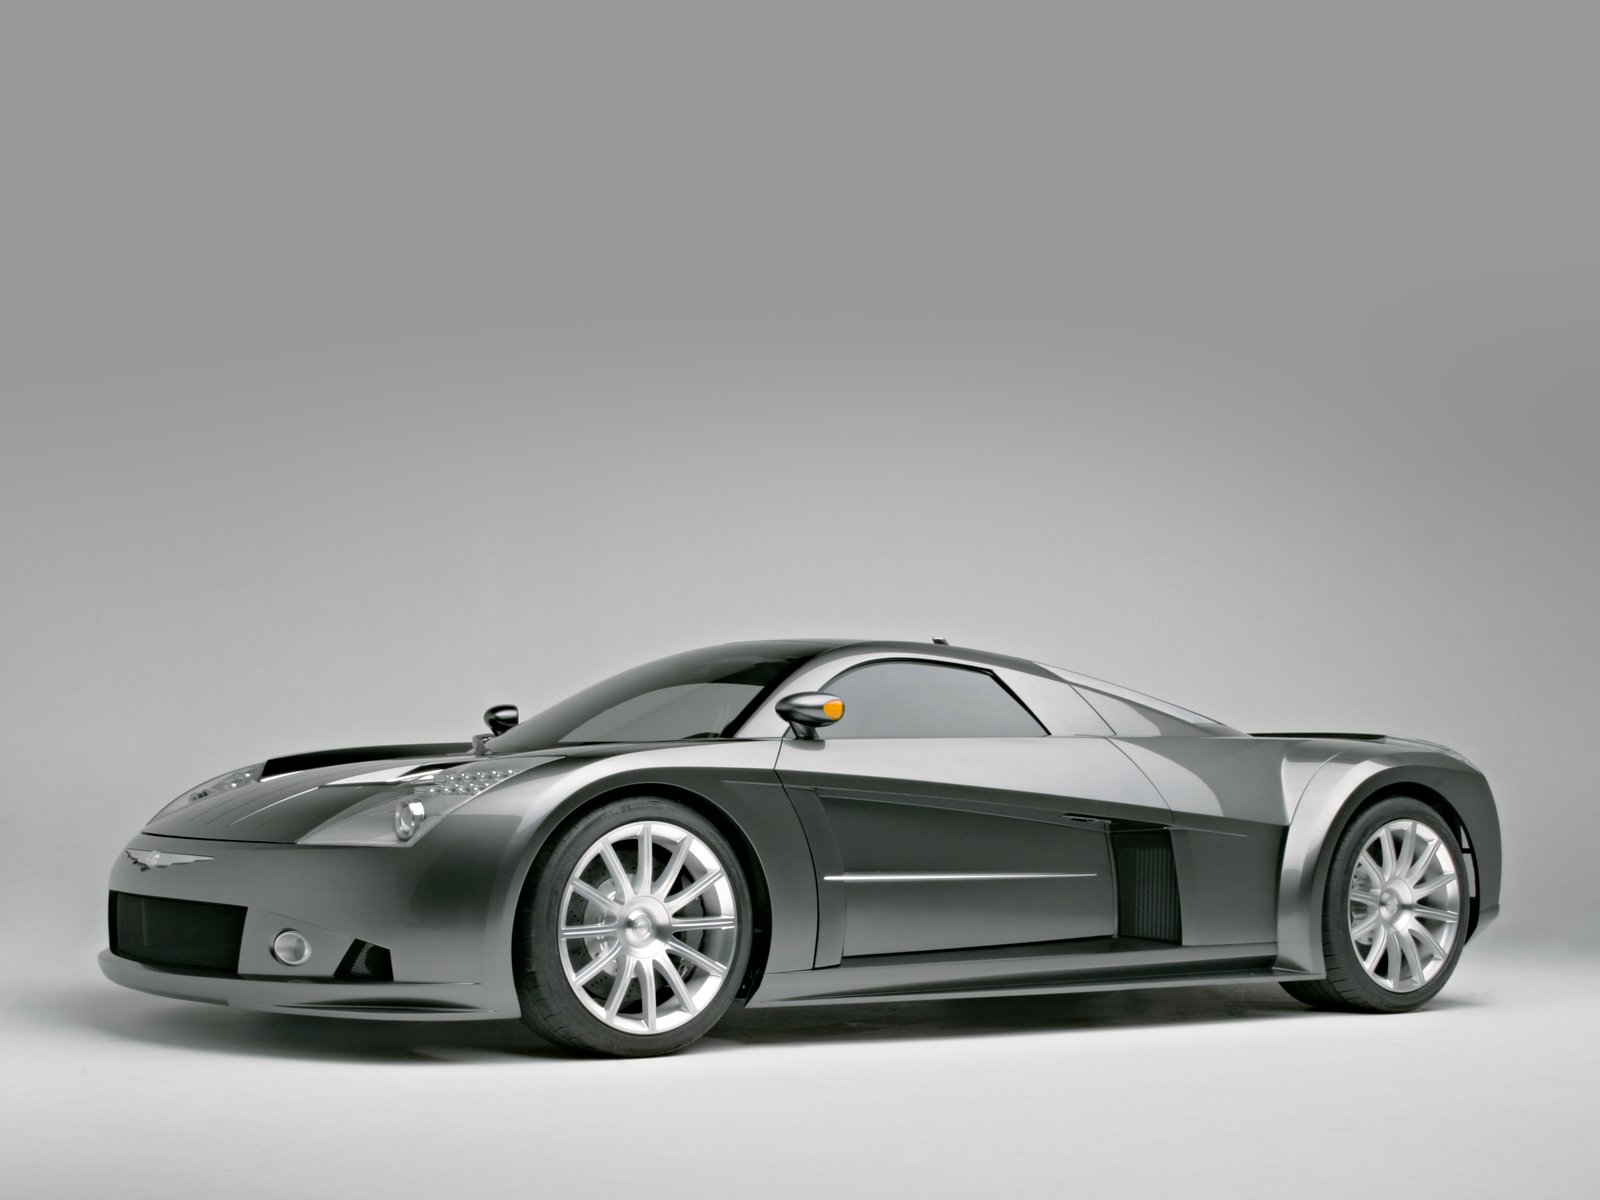 Chrysler ME 412 3